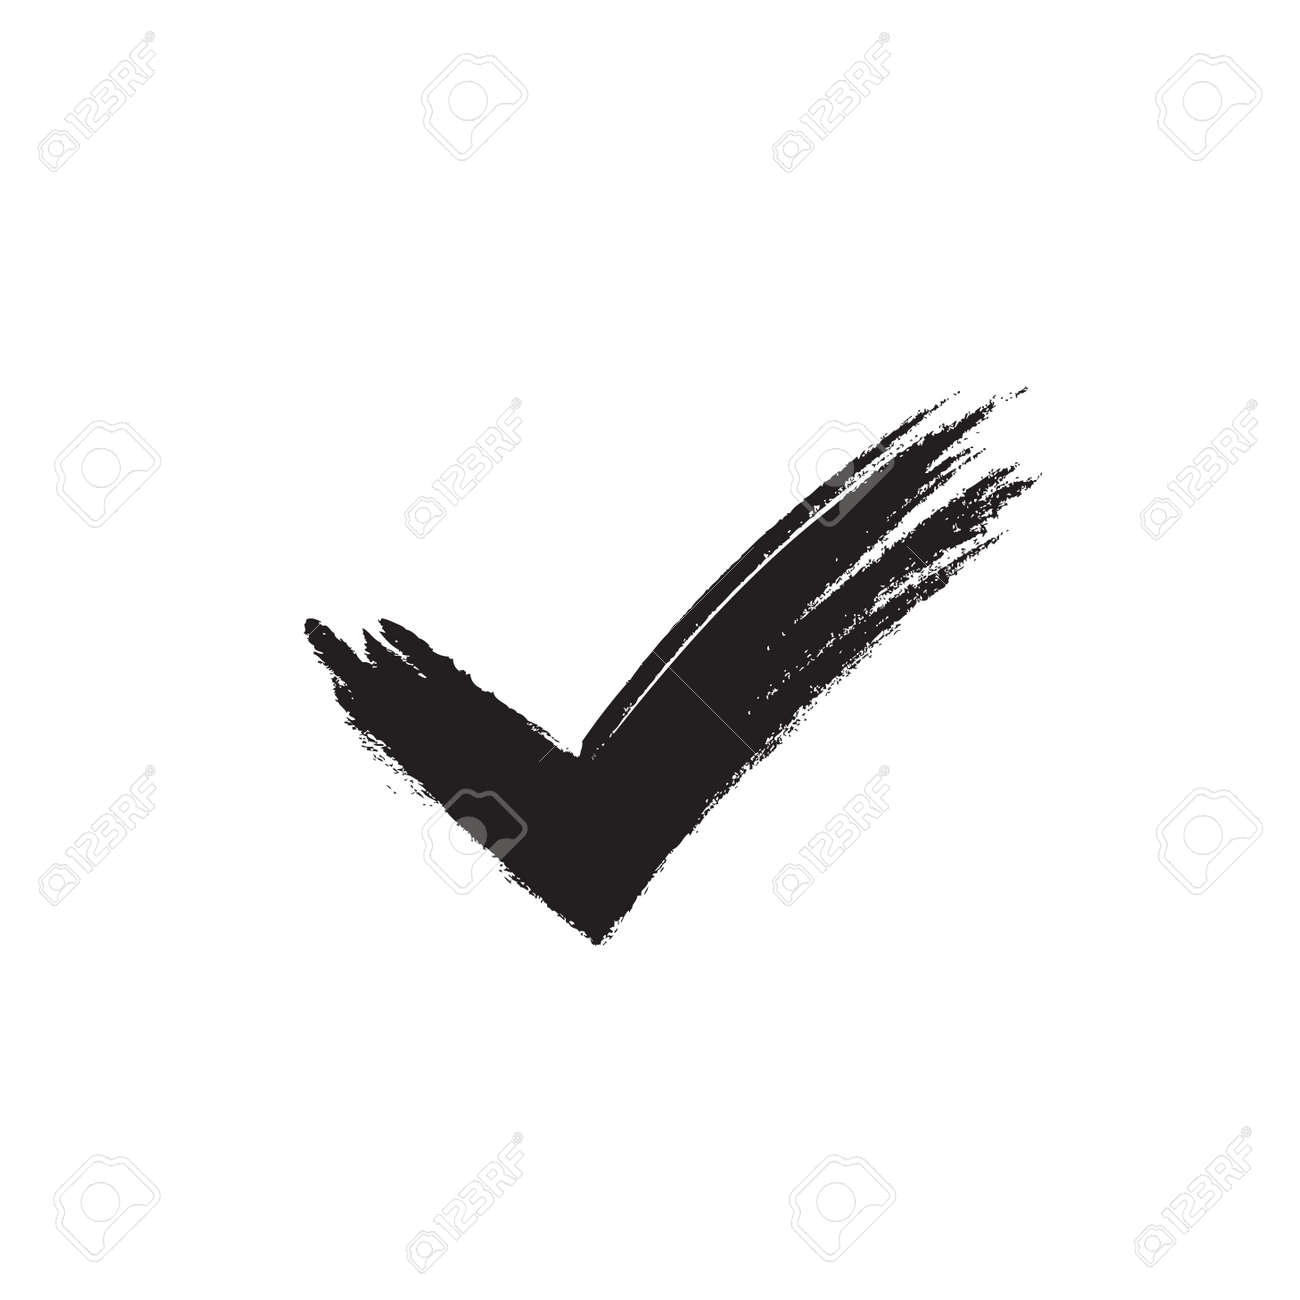 tick sign element black grunge checkmark icon isolated on white rh 123rf com check mark graphic art check mark graphic powerpoint